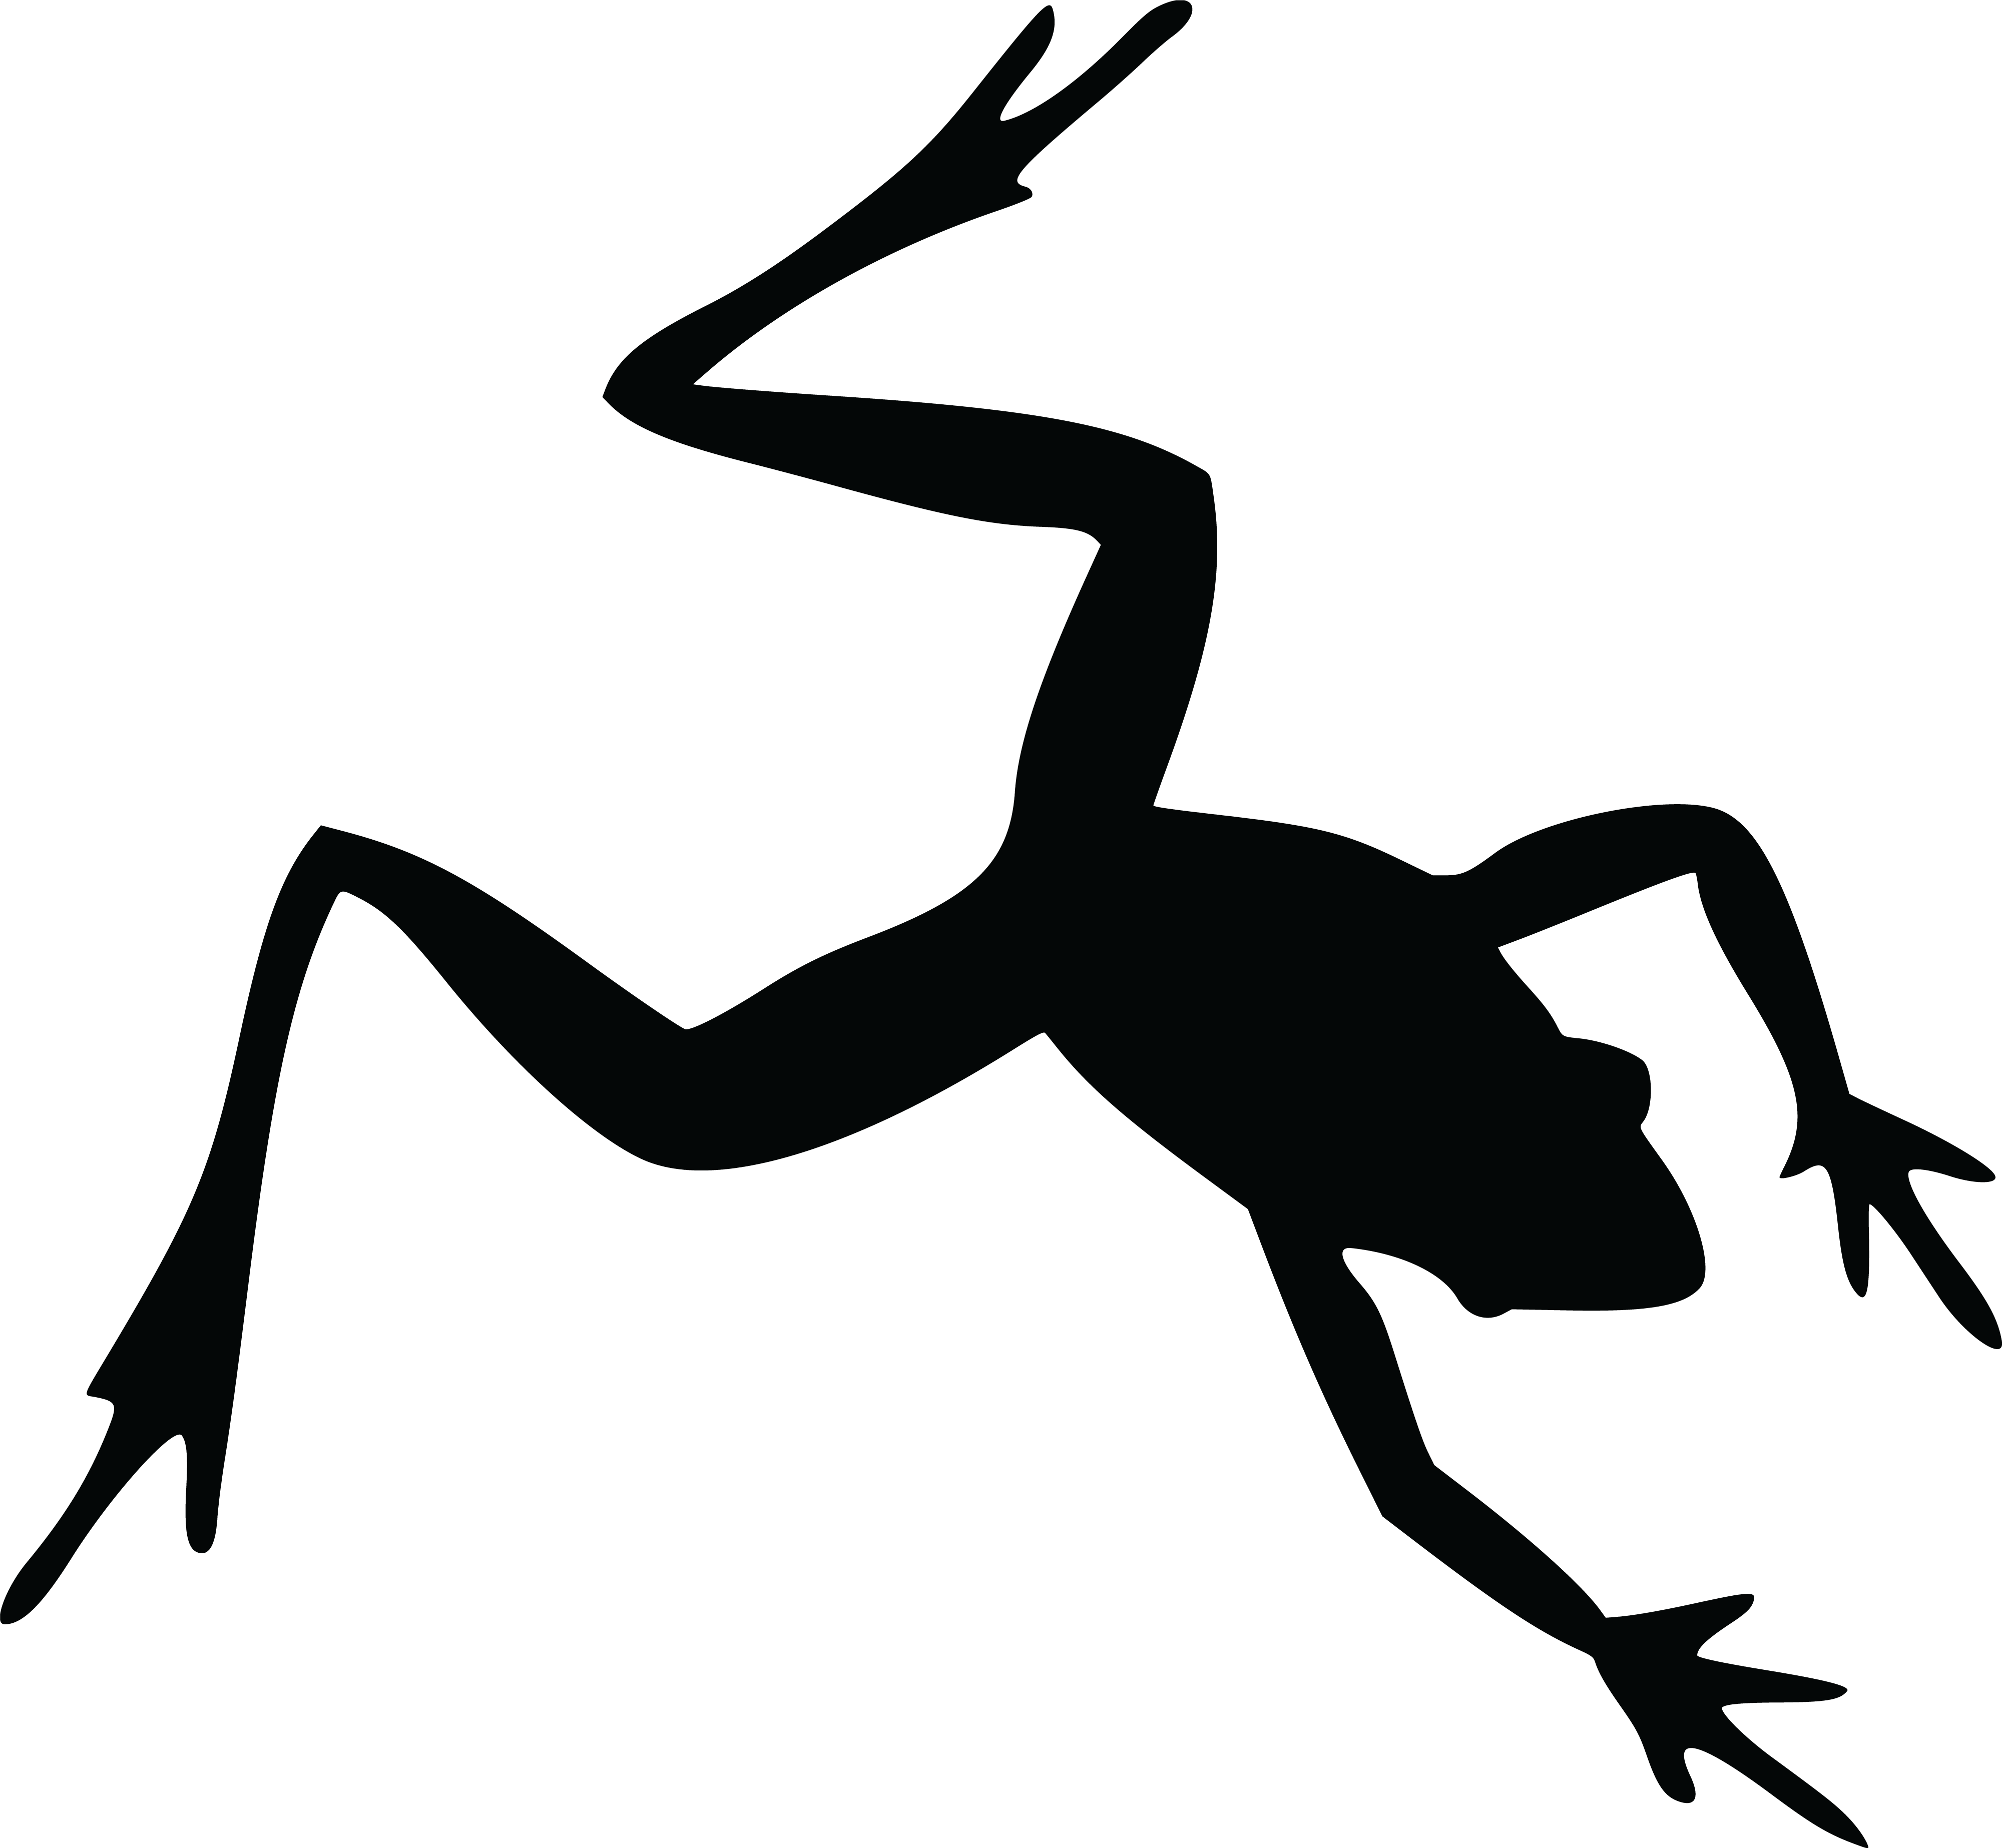 Frogs clipart toad. Frog silhouette images at